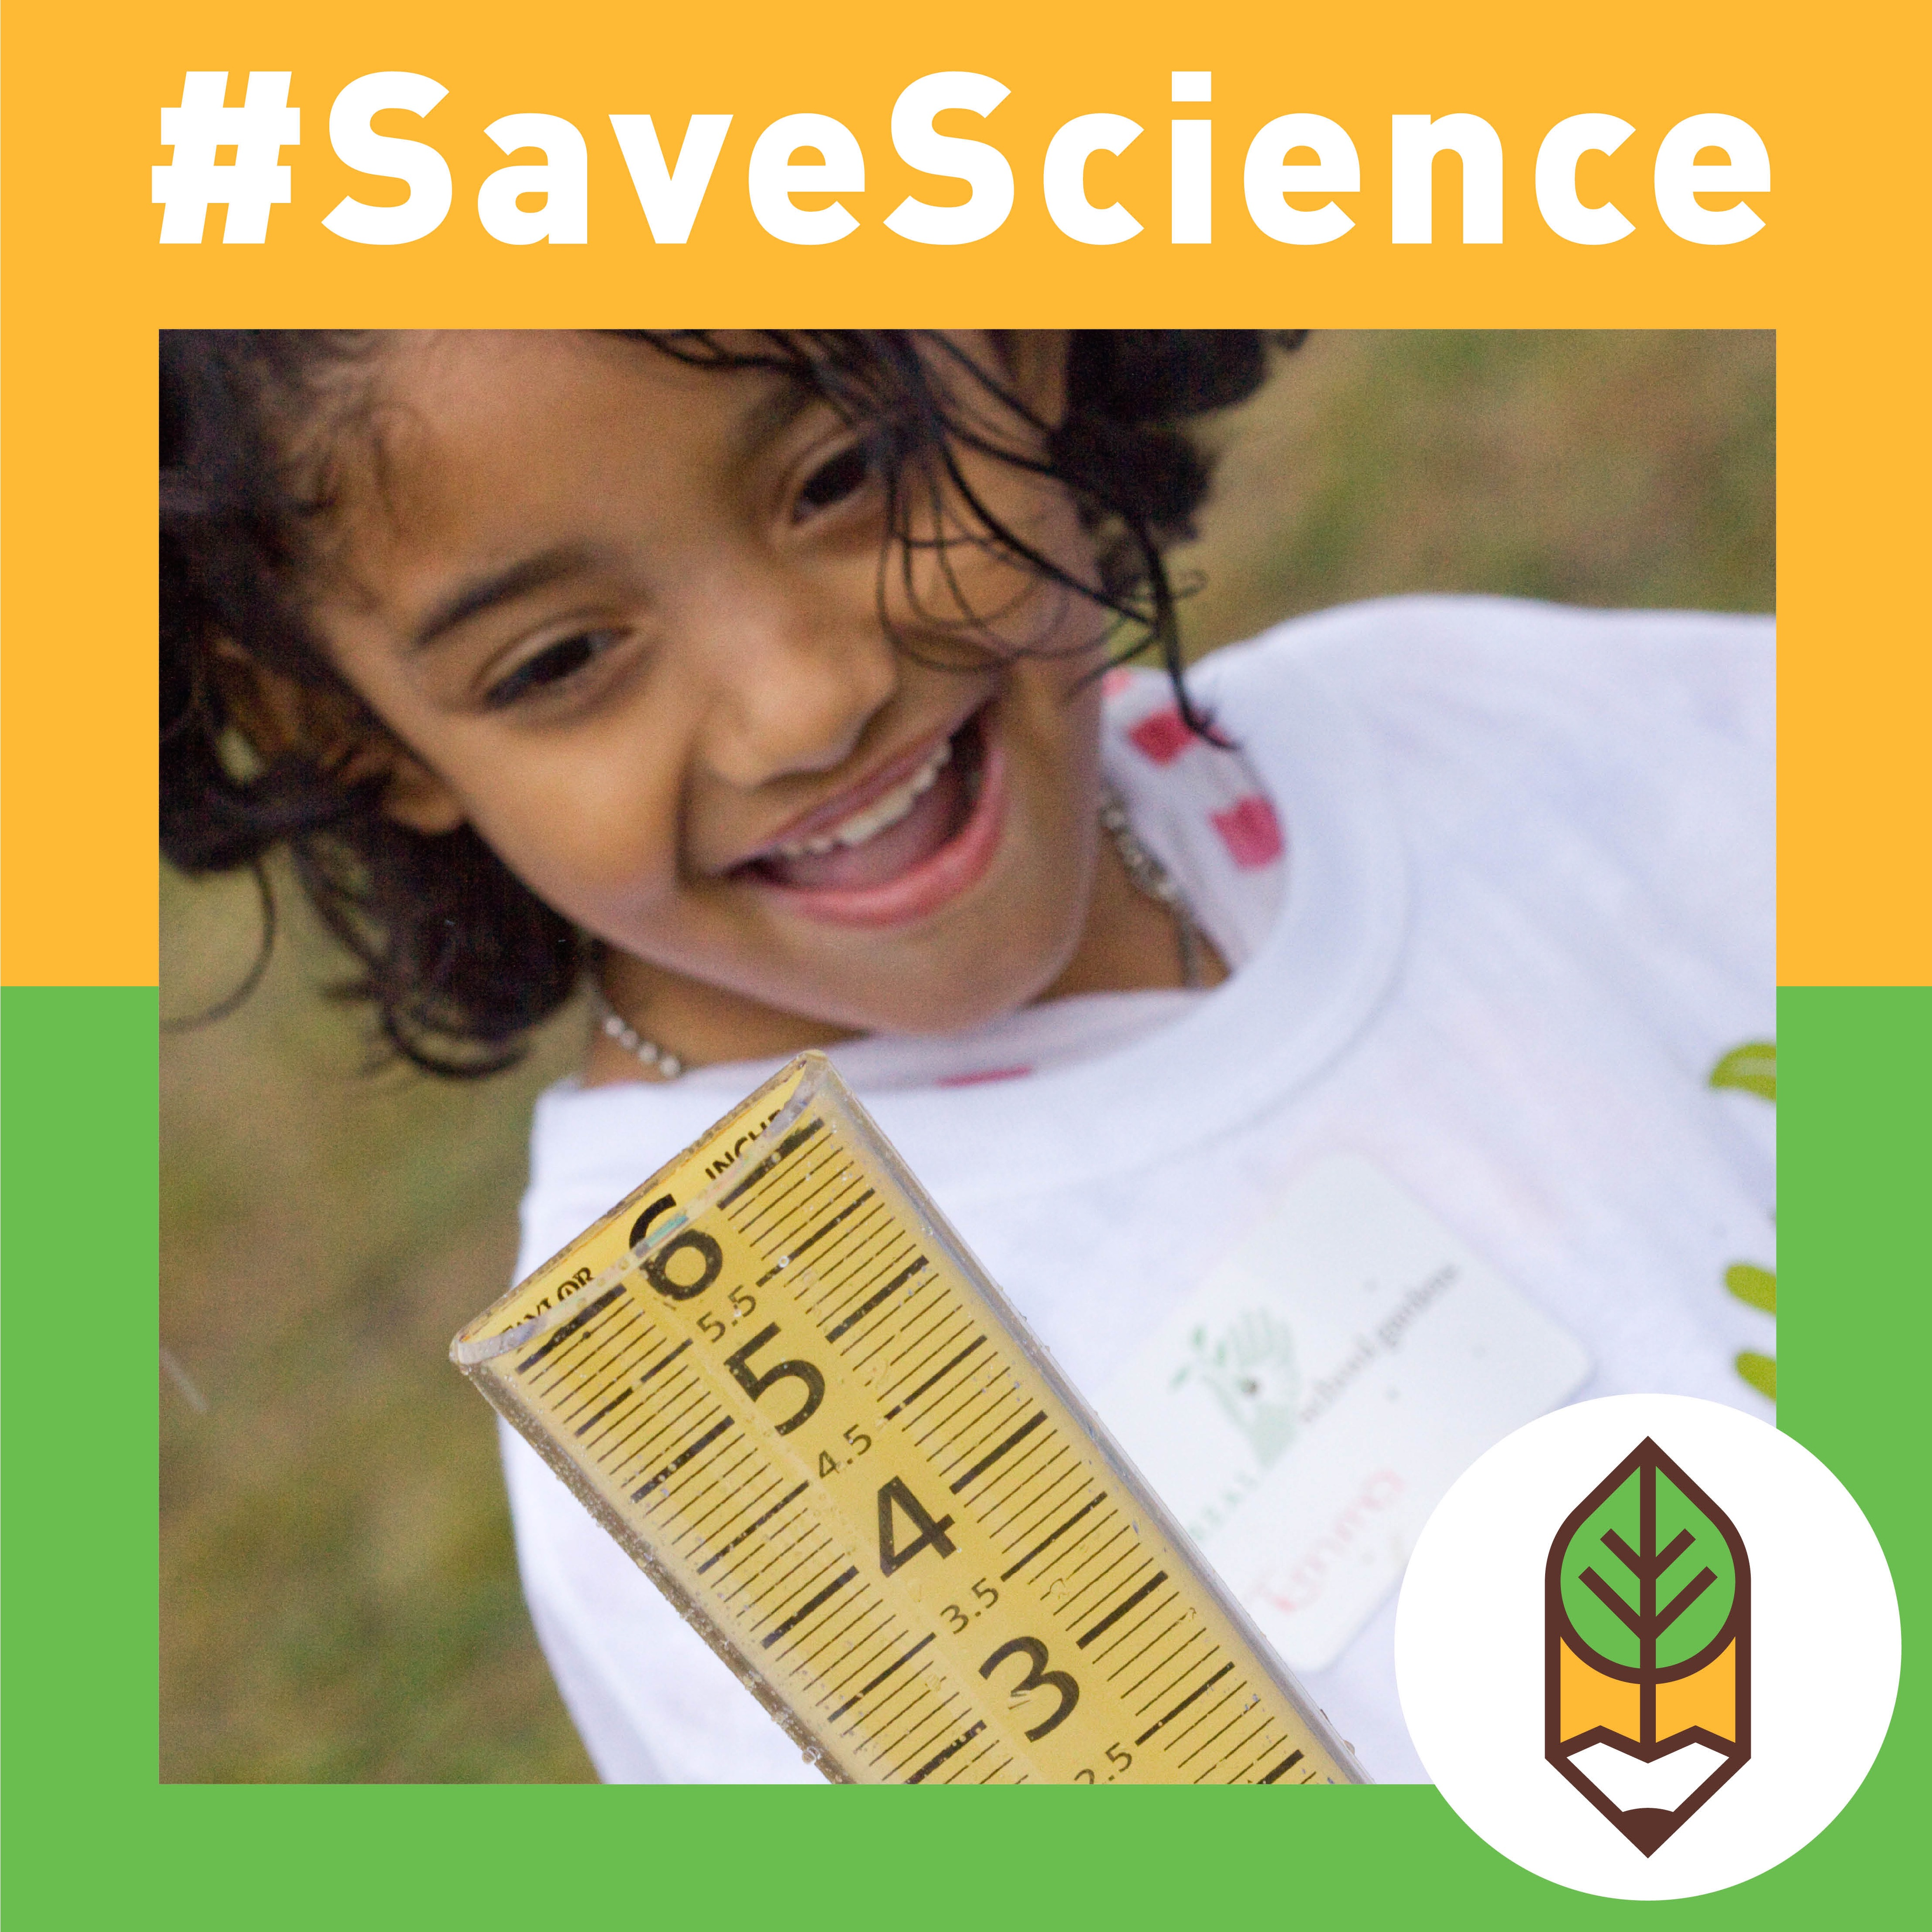 savescience_kids_21